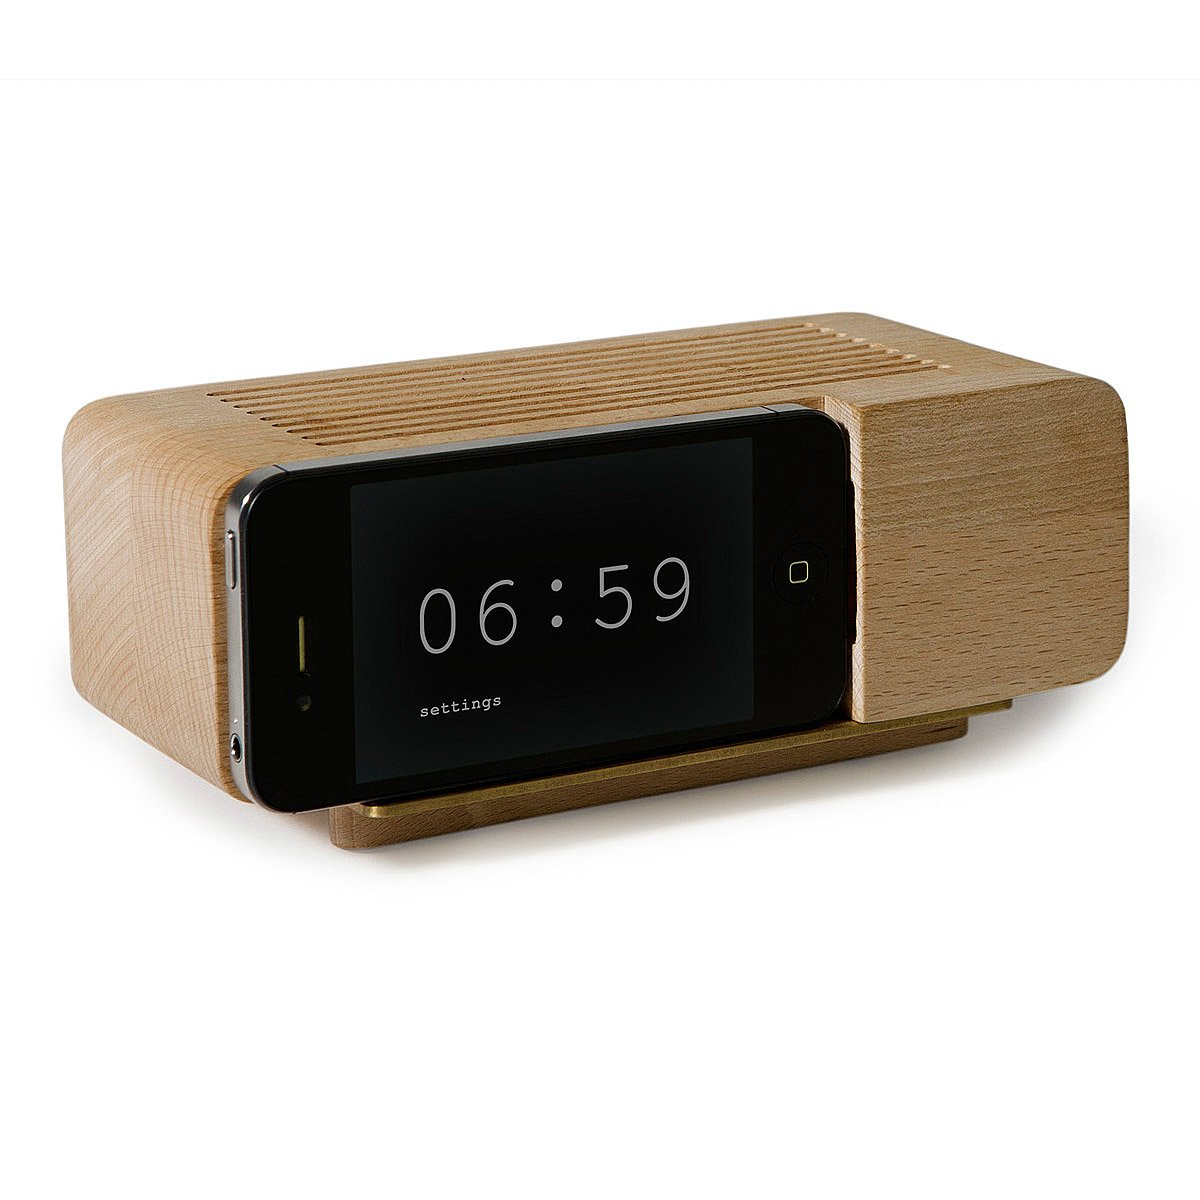 detailing 7a8d7 85dcb iPhone Alarm Dock | Wood Alarm Clock, Areaware | UncommonGoods